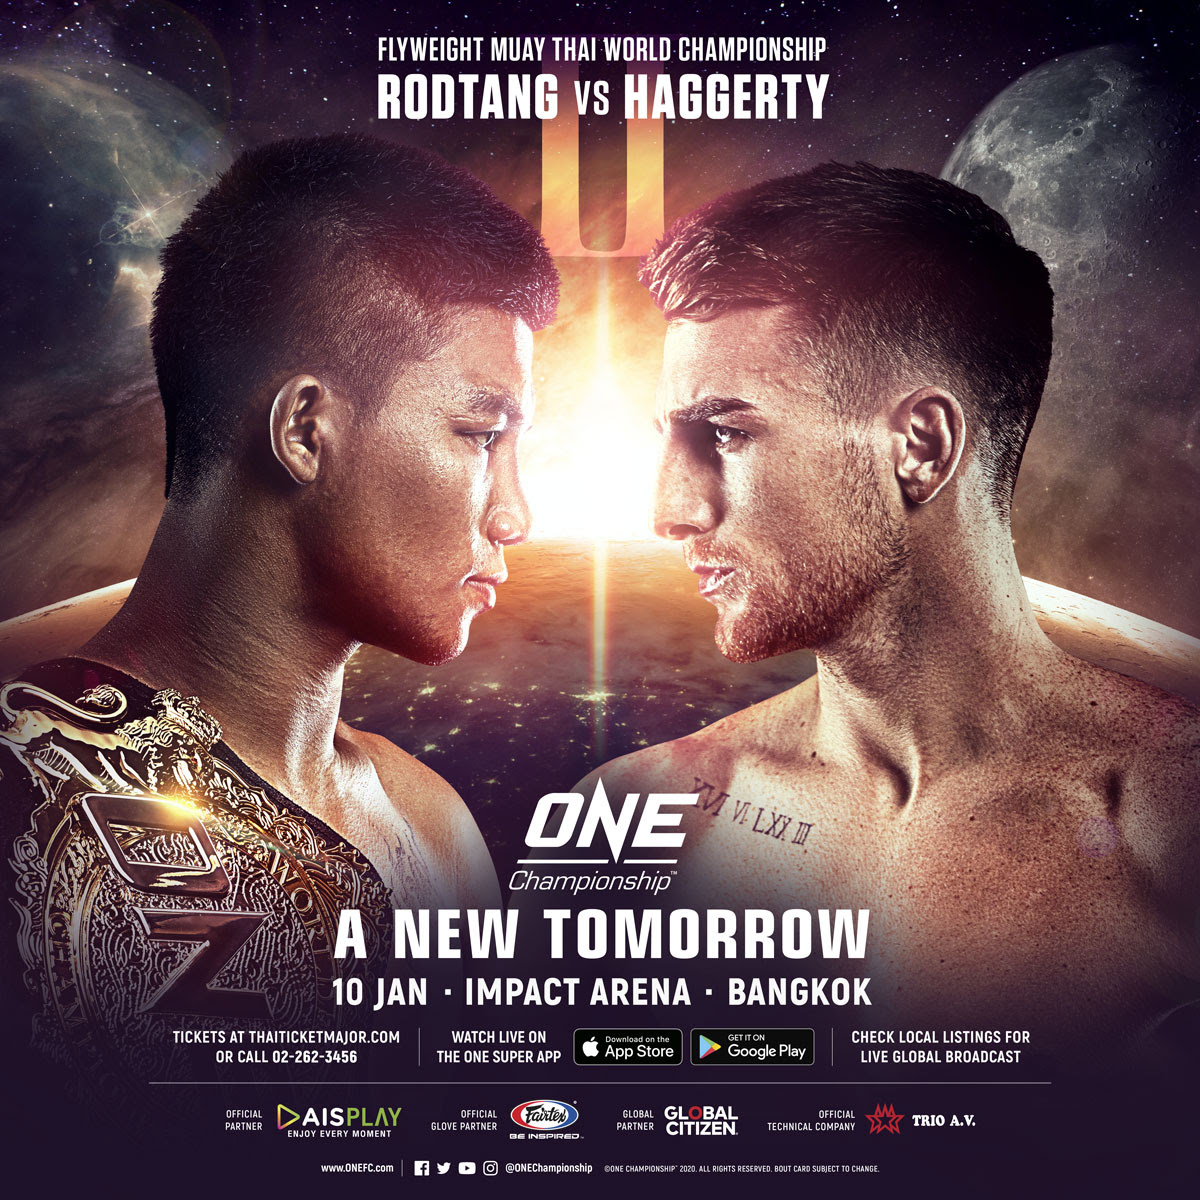 RODTANG JITMUANGNON TO DEFEND ONE FLYWEIGHT MUAY THAI WORLD TITLE AGAINST JONATHAN HAGGERTY IN REMATCH -